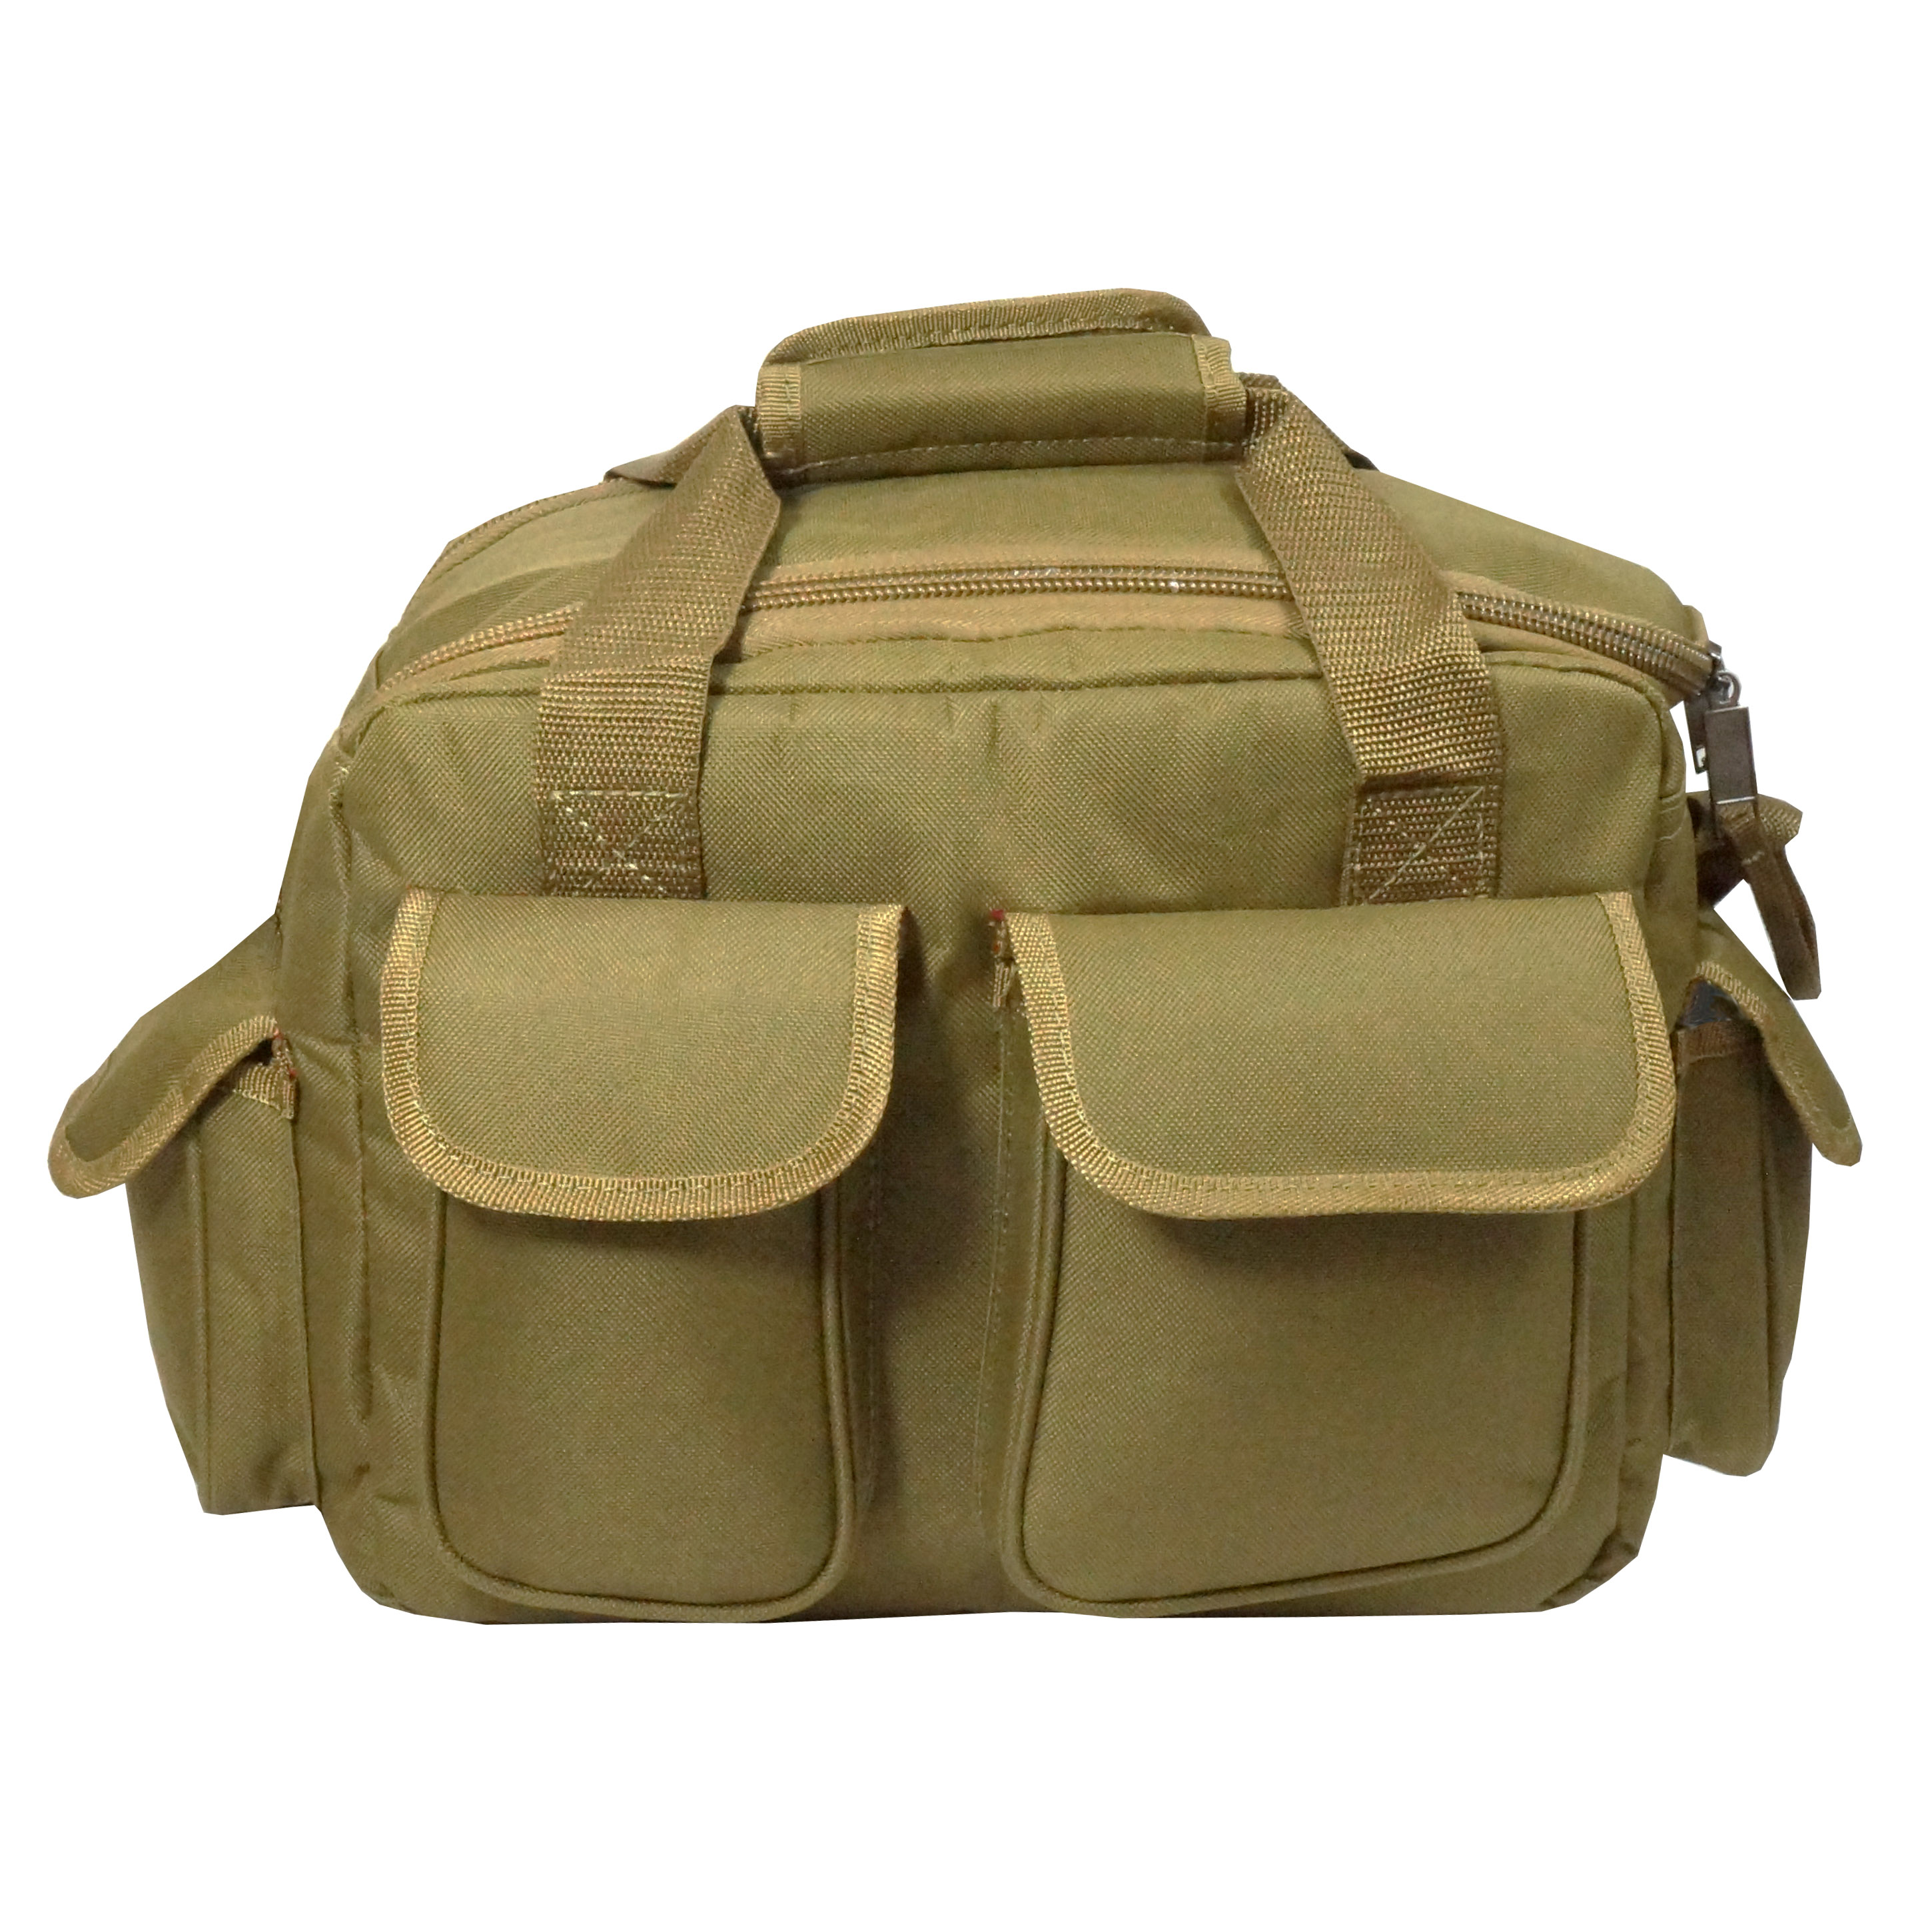 Every Day Carry Tactical Shooters Shoulder Messenger Padded Storage Range Bag